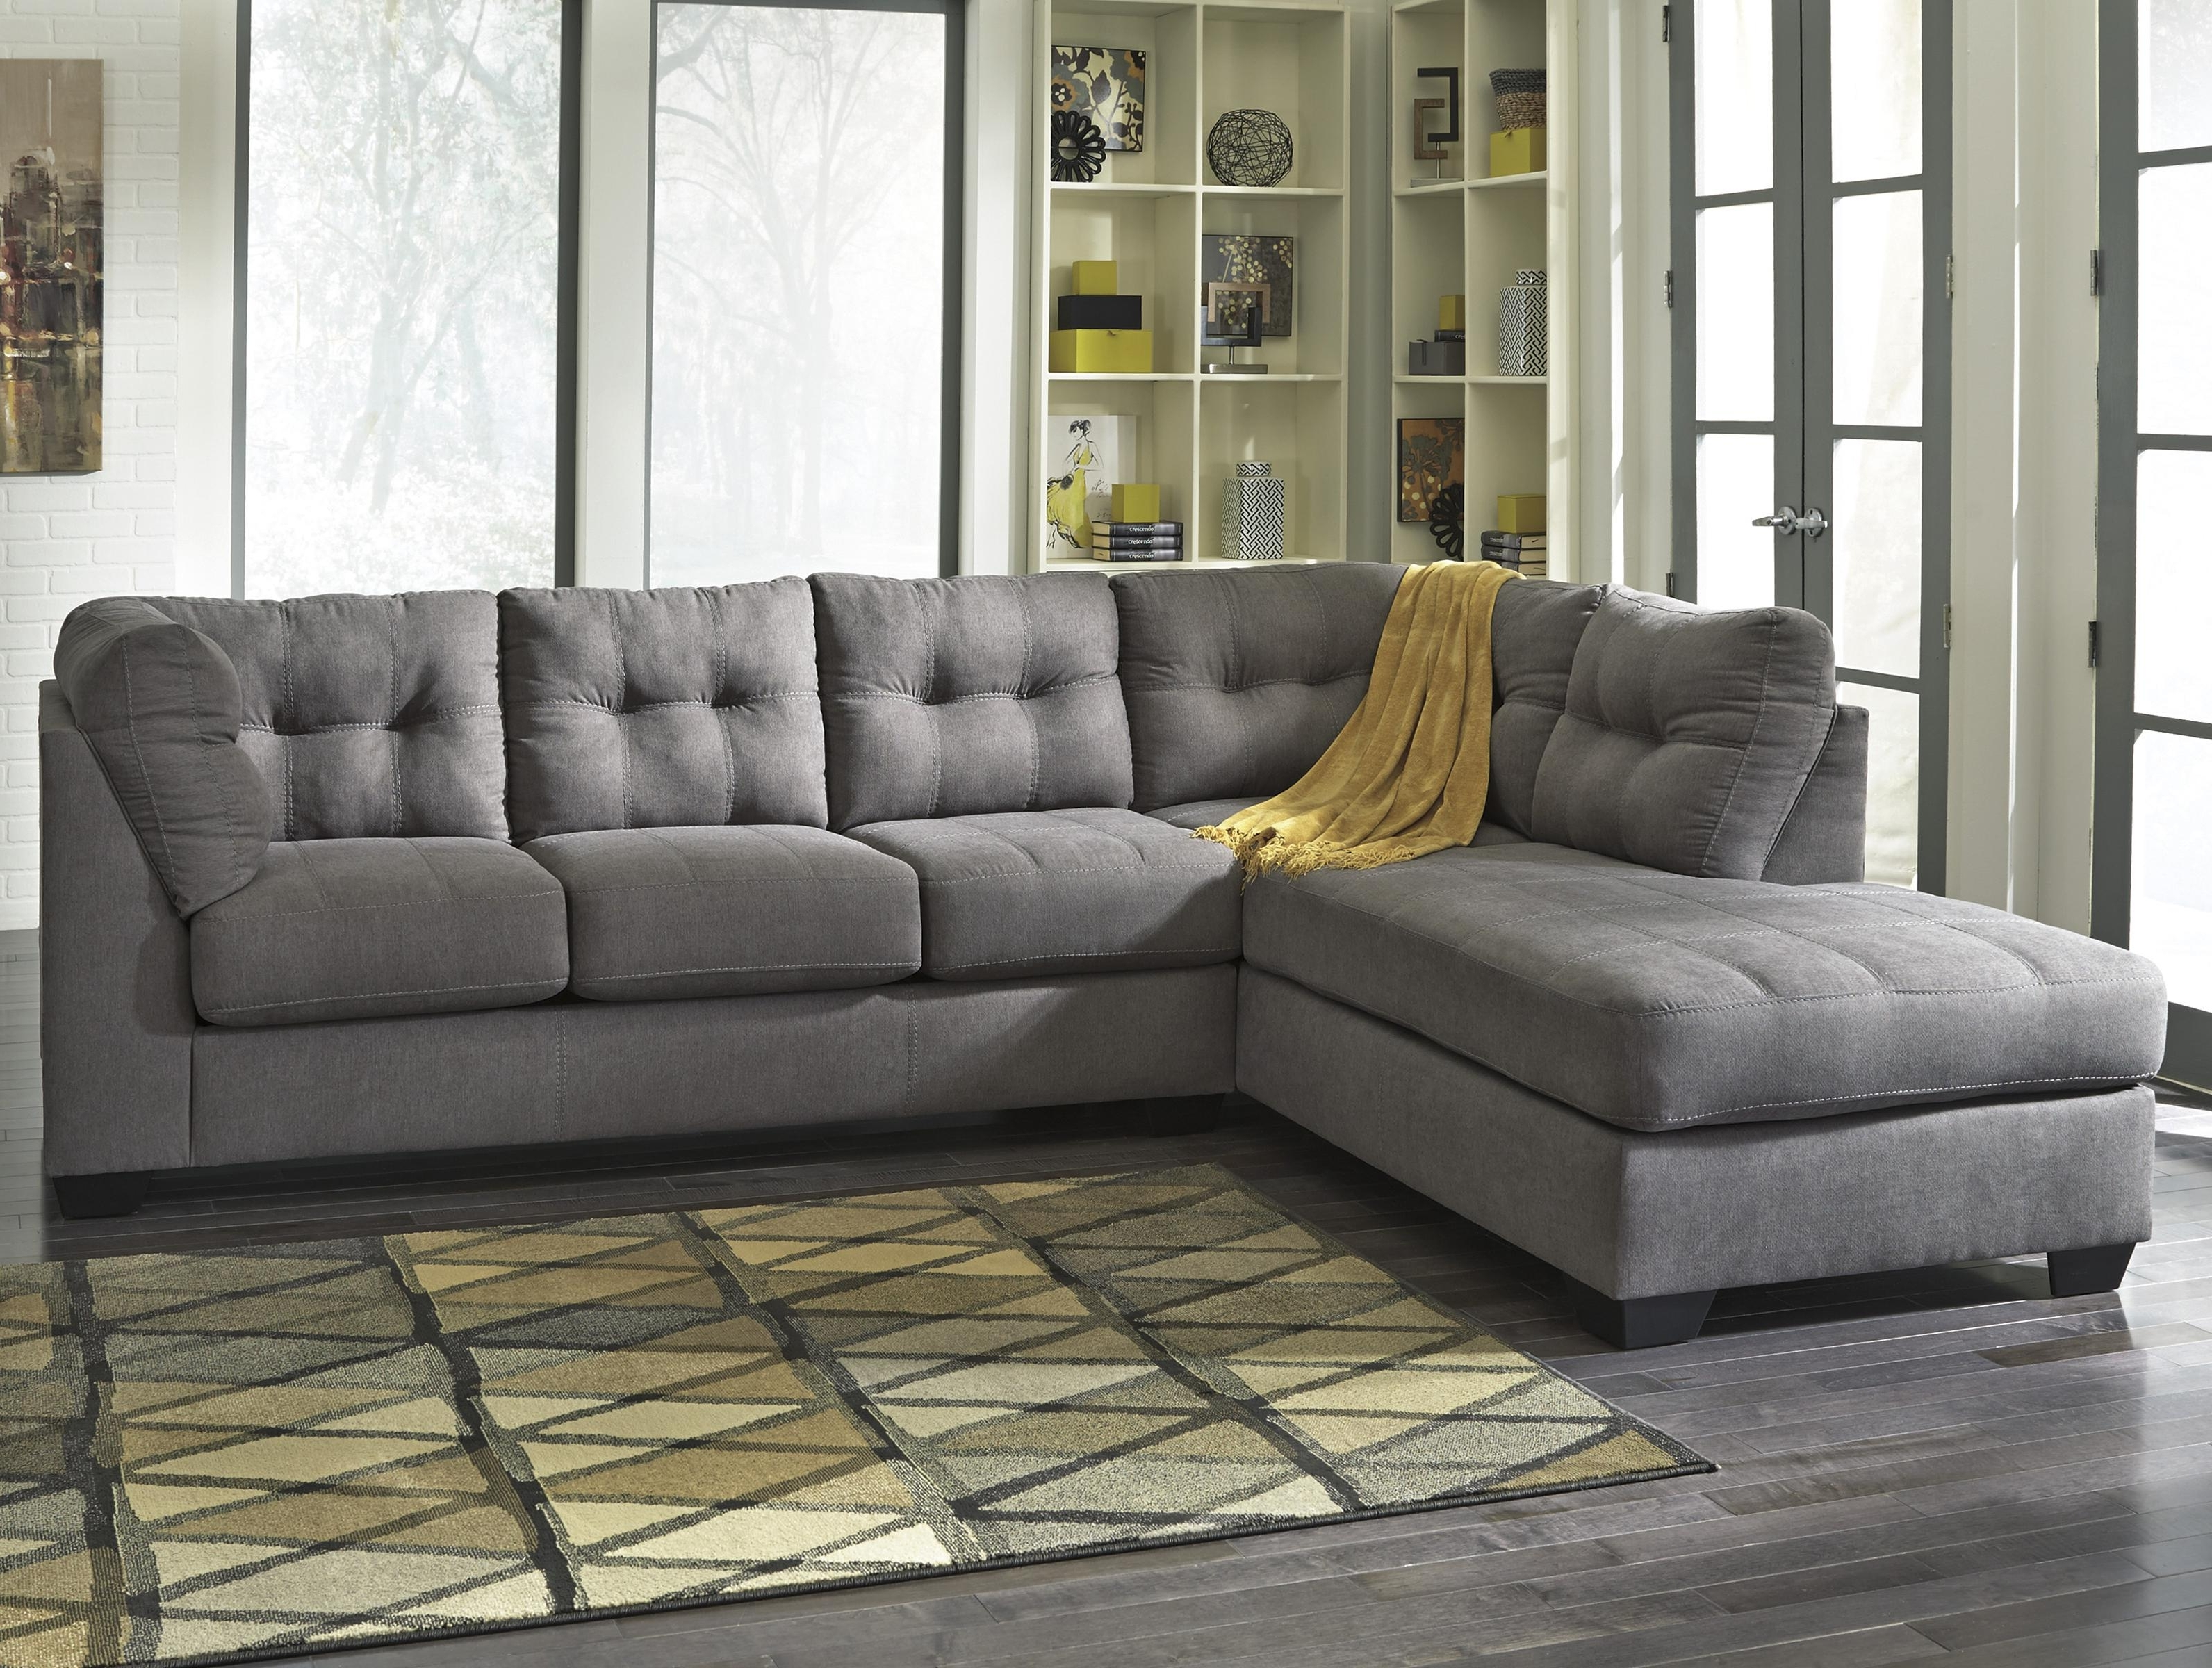 Favorite Choosing 2 Piece Sectional Sofa – Elites Home Decor Pertaining To Sectional Sofas That Can Be Rearranged (View 14 of 15)